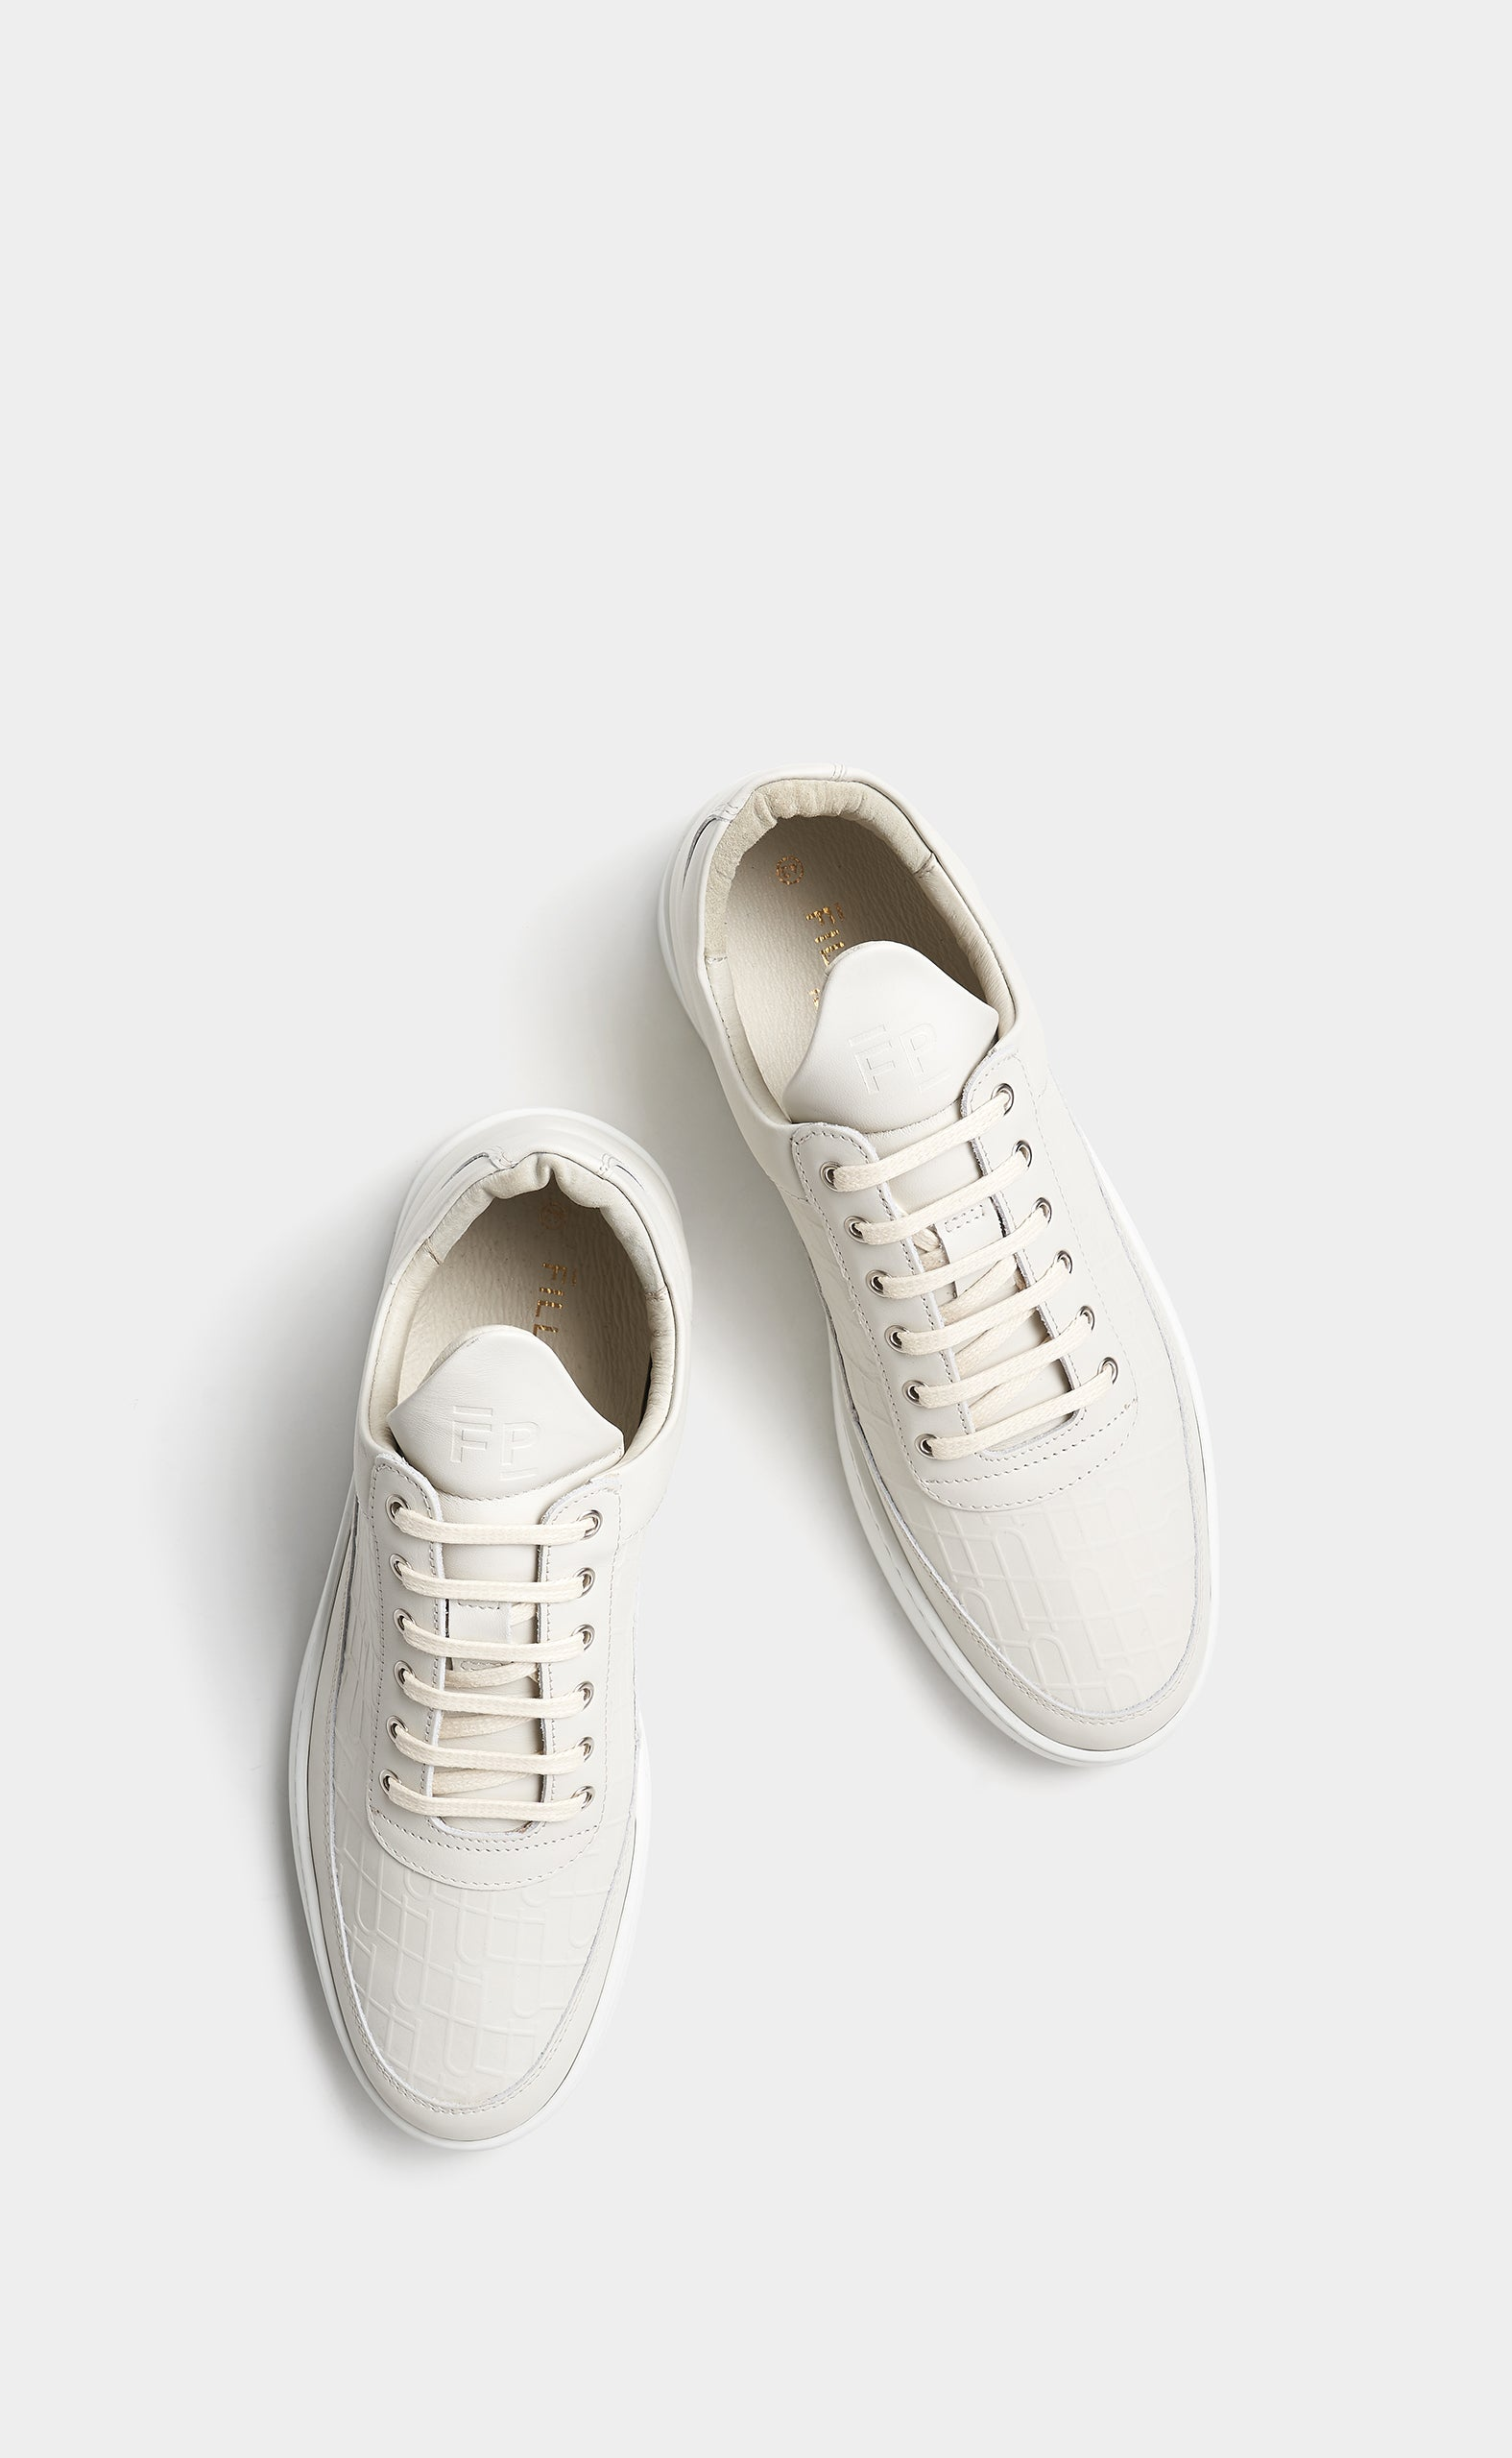 Low Top Ripple Mono Off White